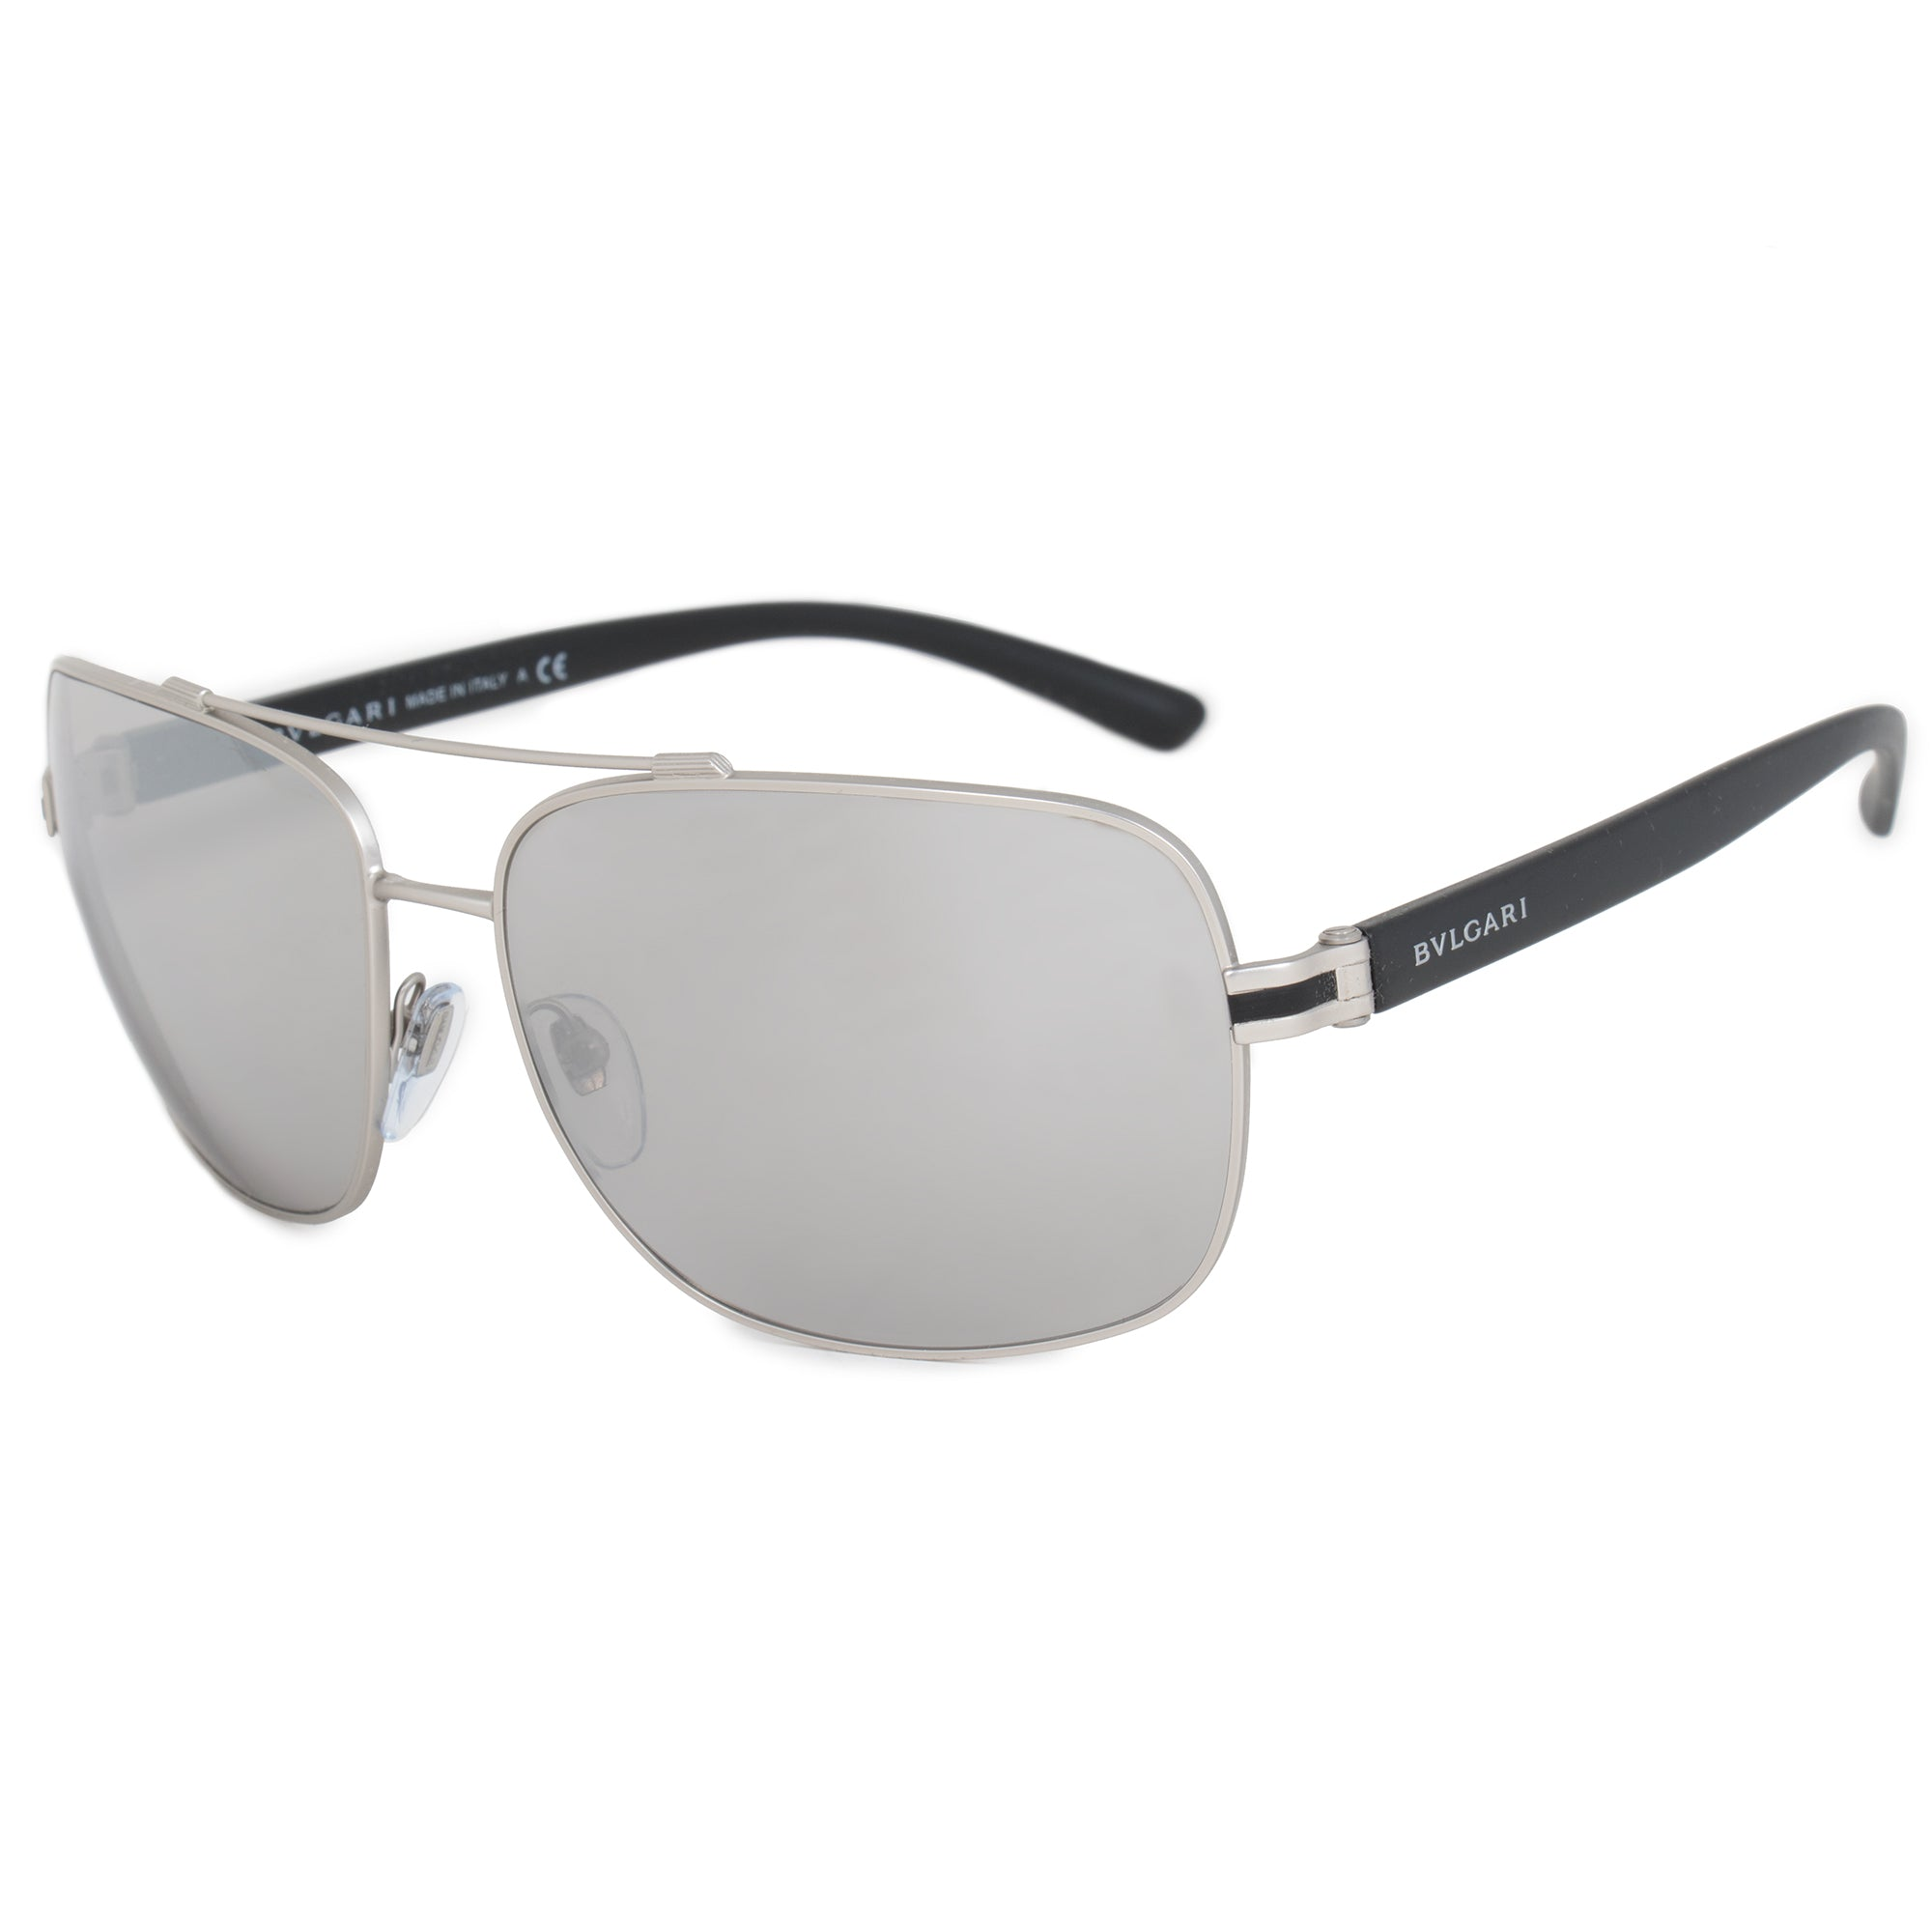 Bvlgari Aviator Sunglasses BV5038 | Matte Silver Metal Frame | Light Gray Mirror Lenses